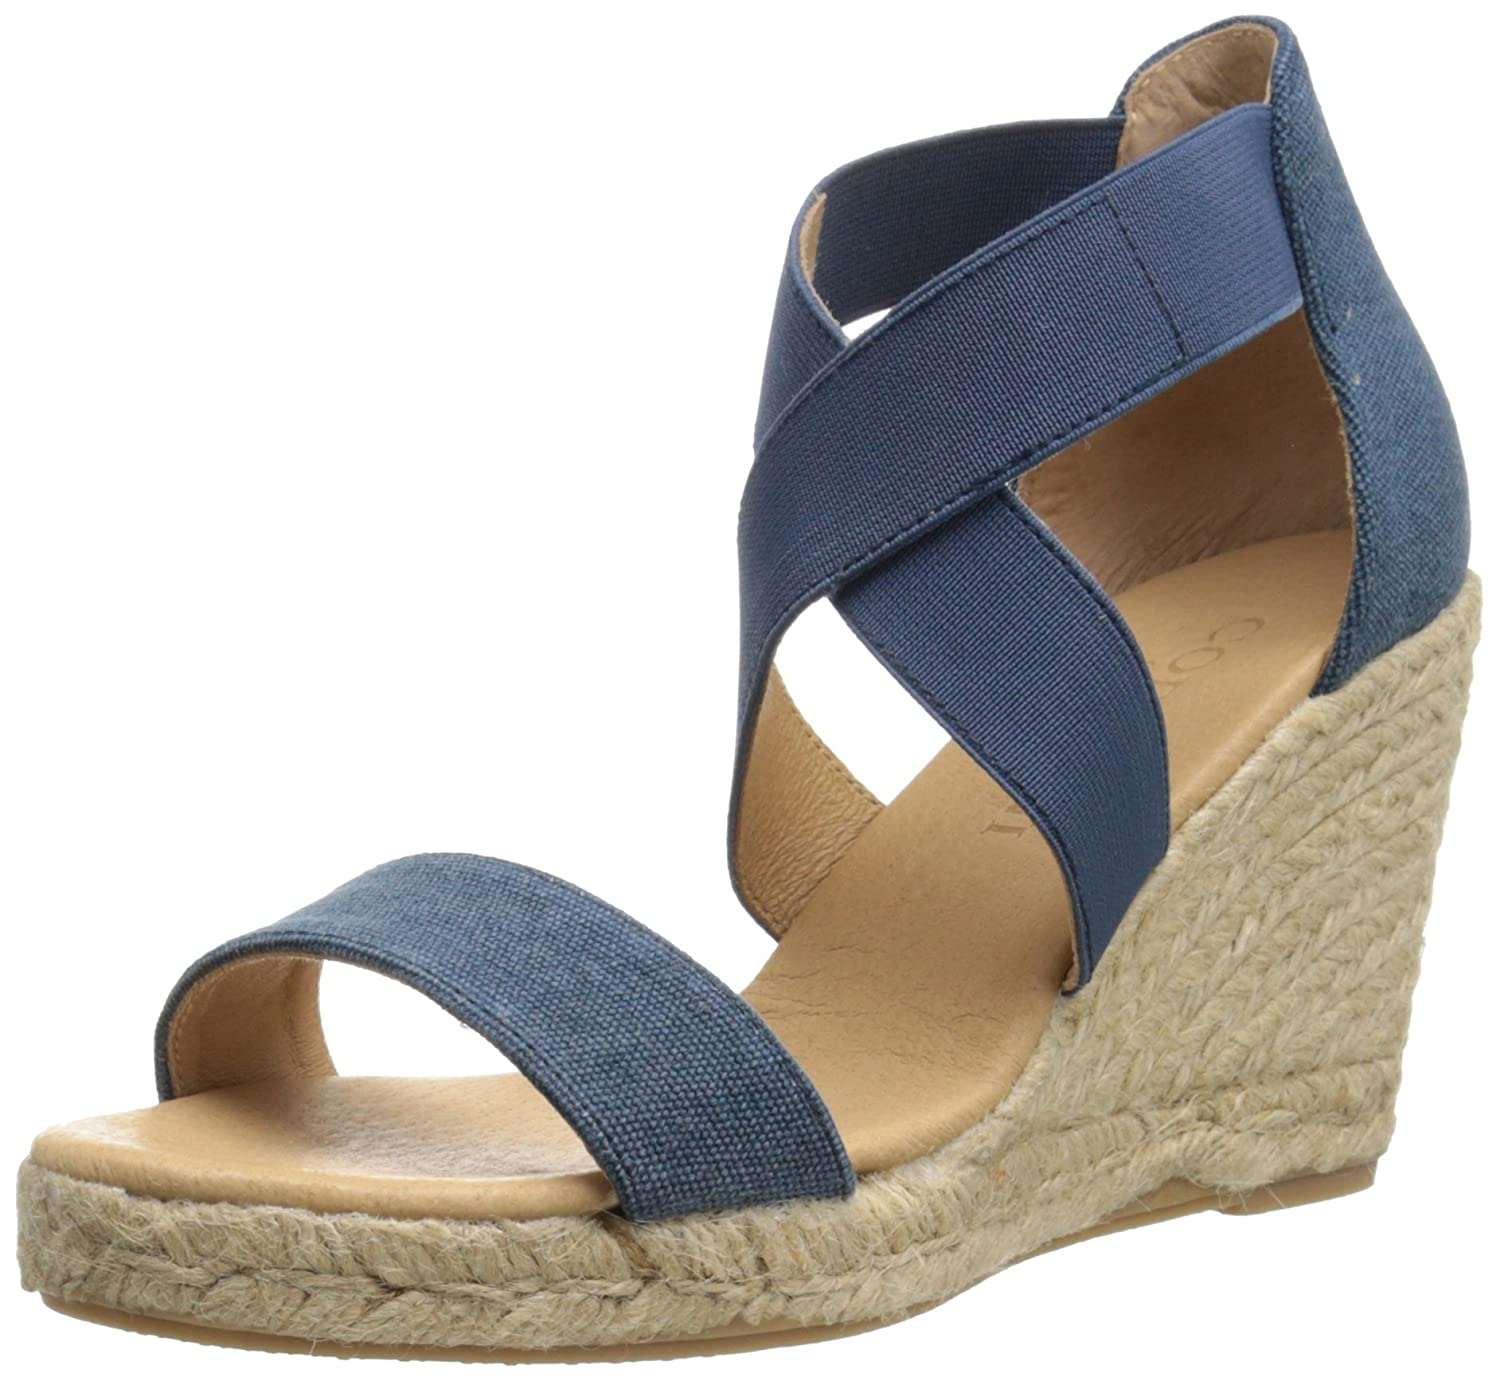 Cordani Women's Enright Espadrille Wedge Sandal B01C7HTBIK 38 M EU / 8 B(M) US|Denim Blue